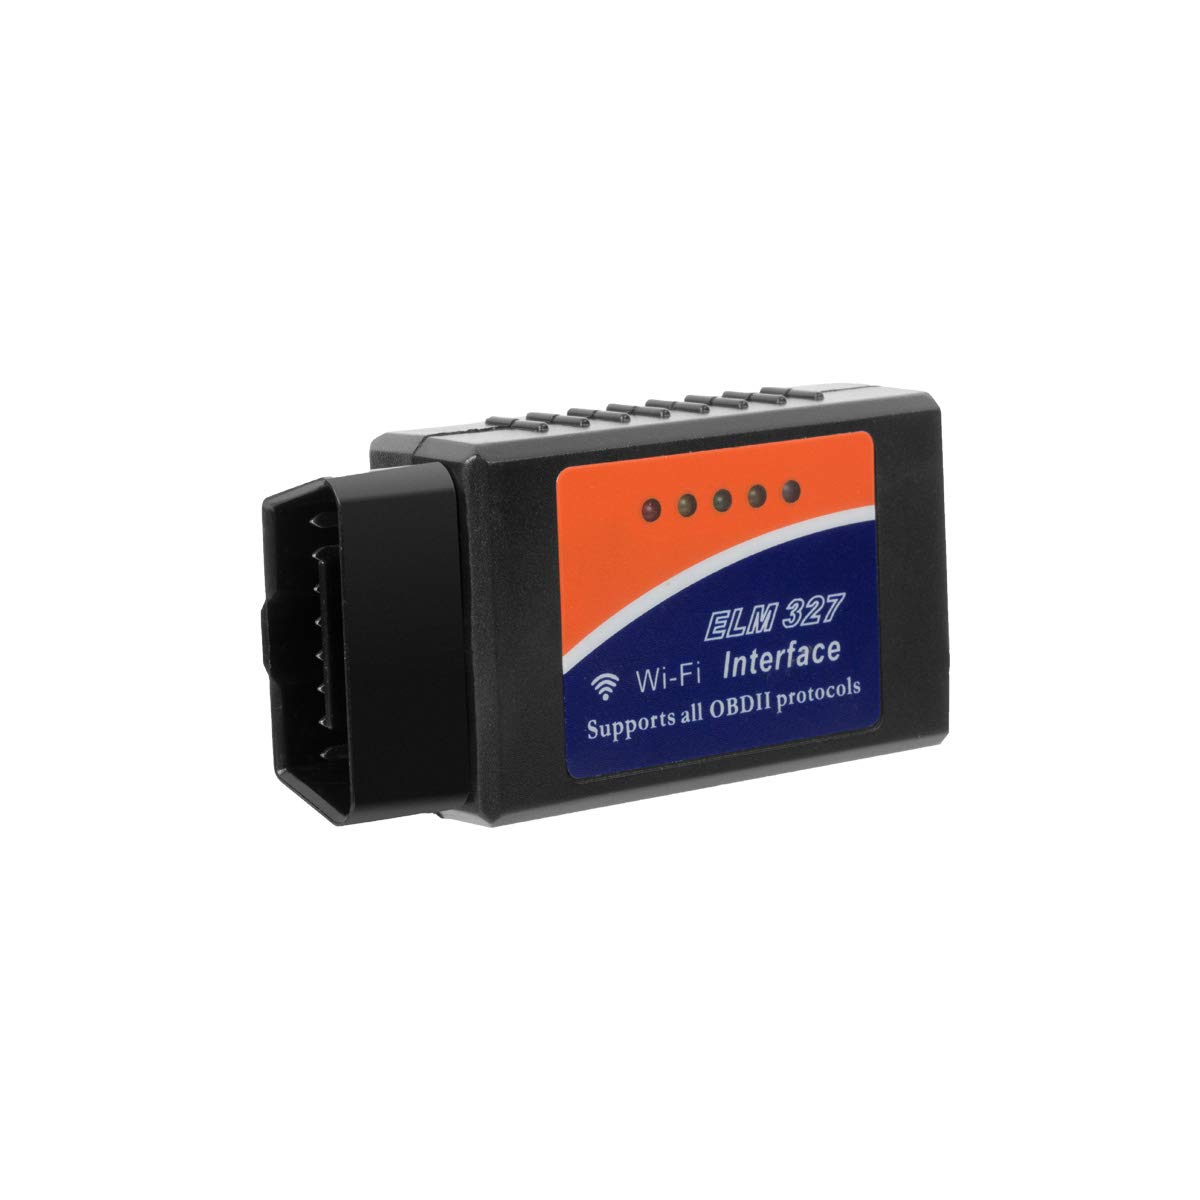 Elm327 WiFi OBDii Interface with Switch OBD2 Can Bus Scanner Diagnostic Tool with Original 25k80 Chip Support iOS//Android V2.1